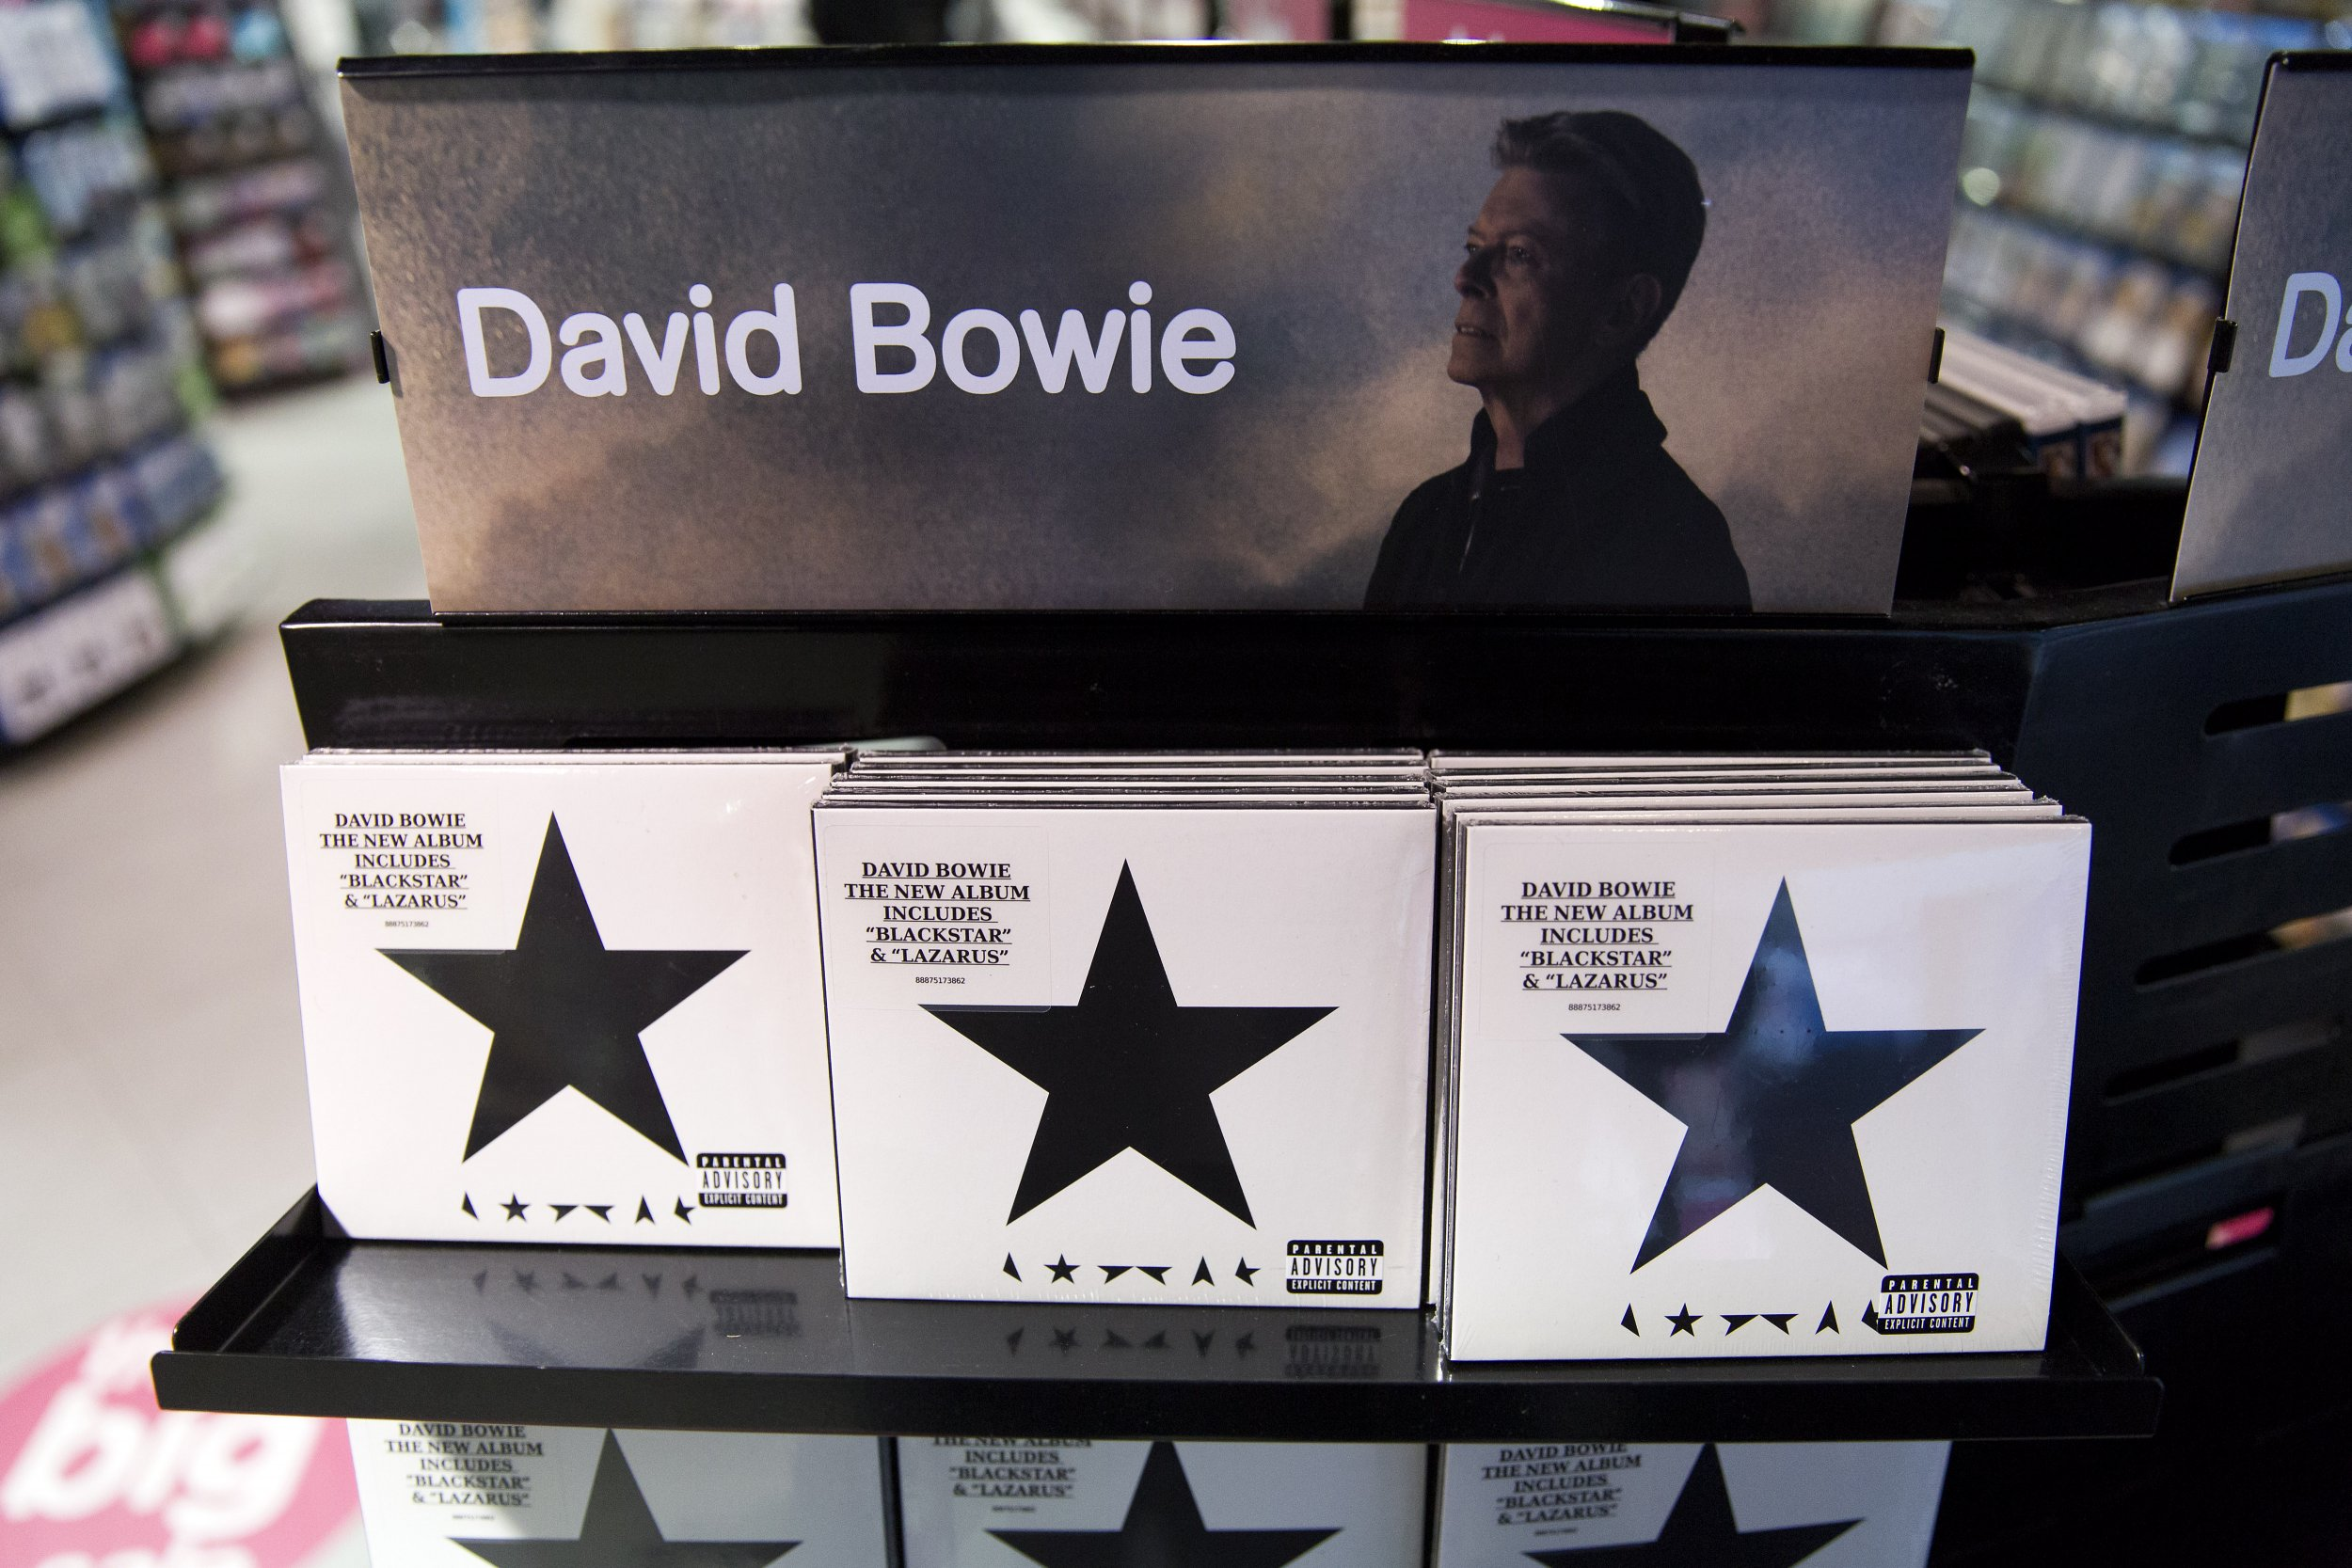 David Bowie's Blackstar